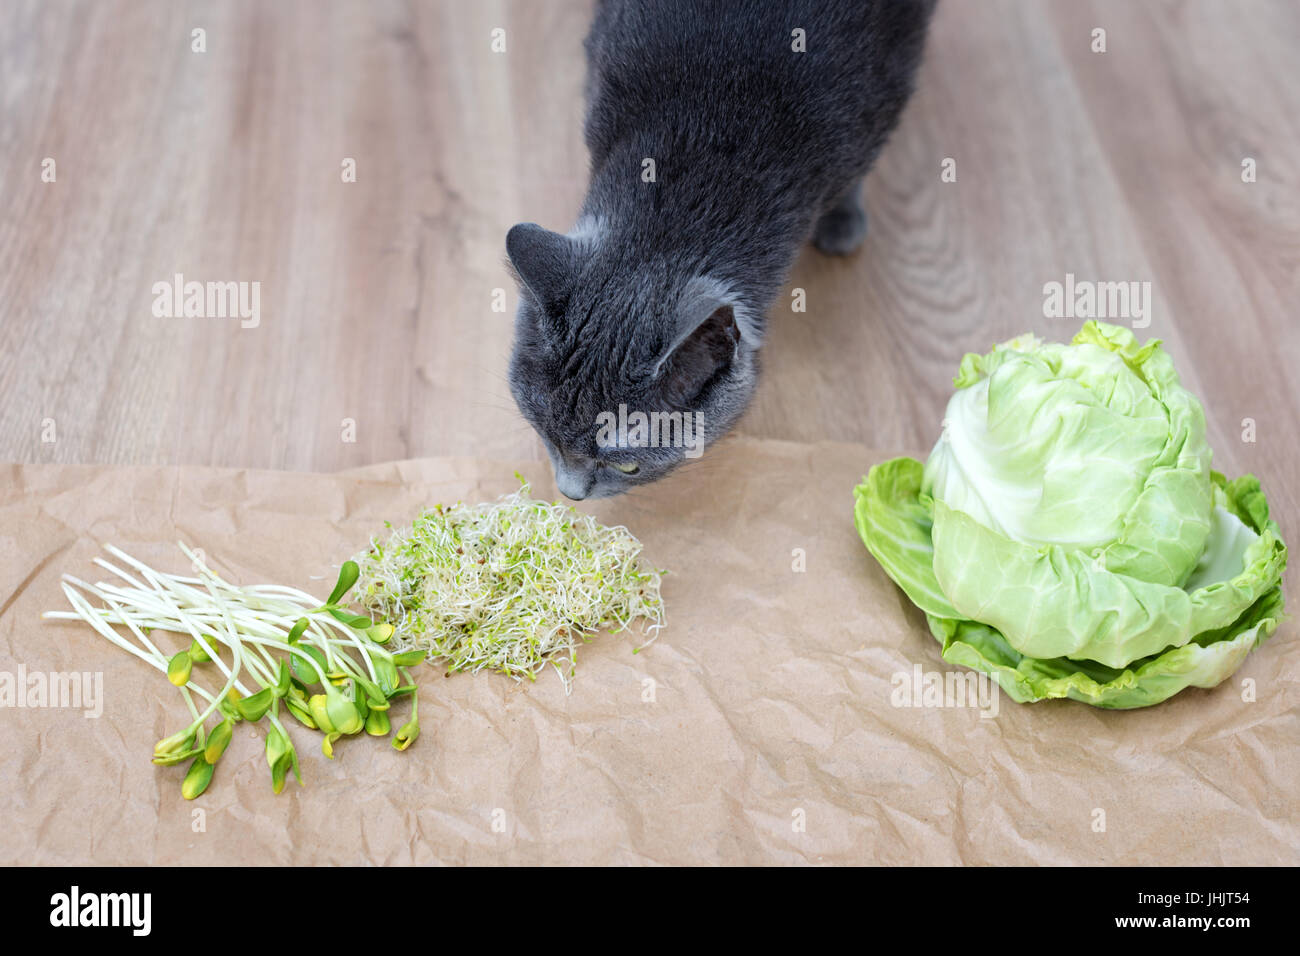 Gray cat sniffing food, green cabagge and micro greens. Cutted microgreens on crumpled craft paper. Healthy eating - Stock Image